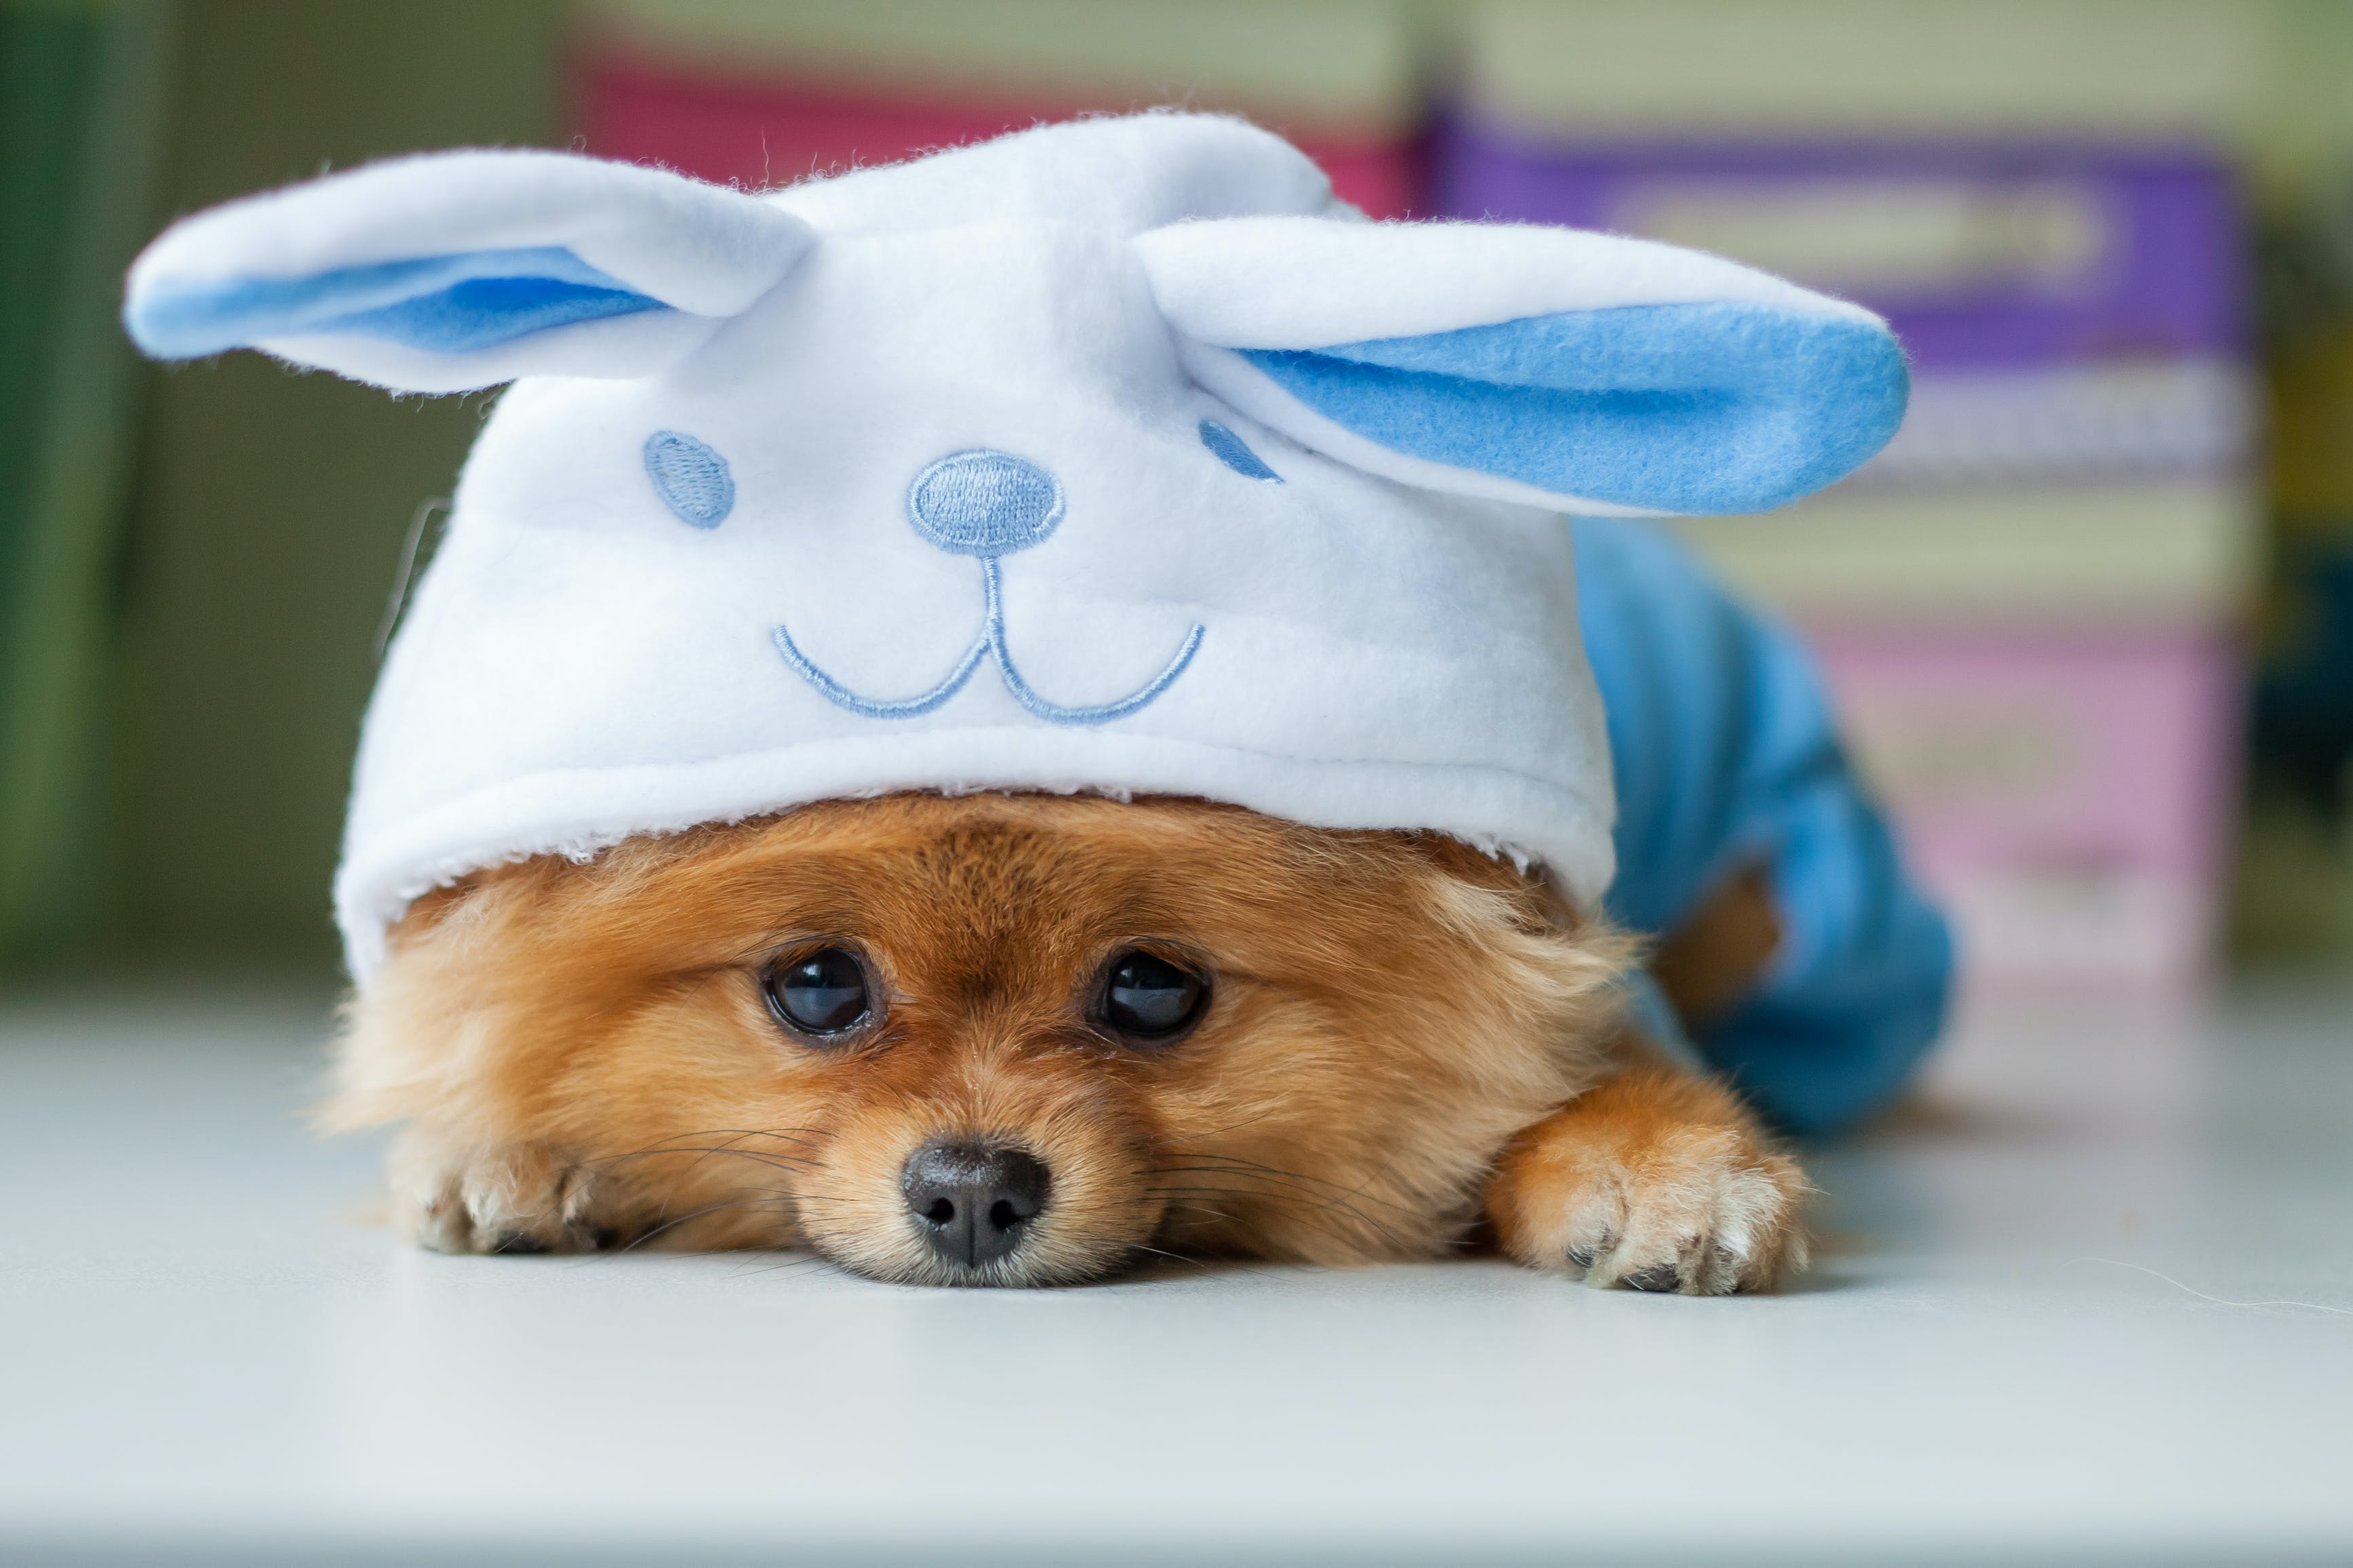 Wilson's costume story for 10 Dog Halloween Costume Ideas for Pomeranians